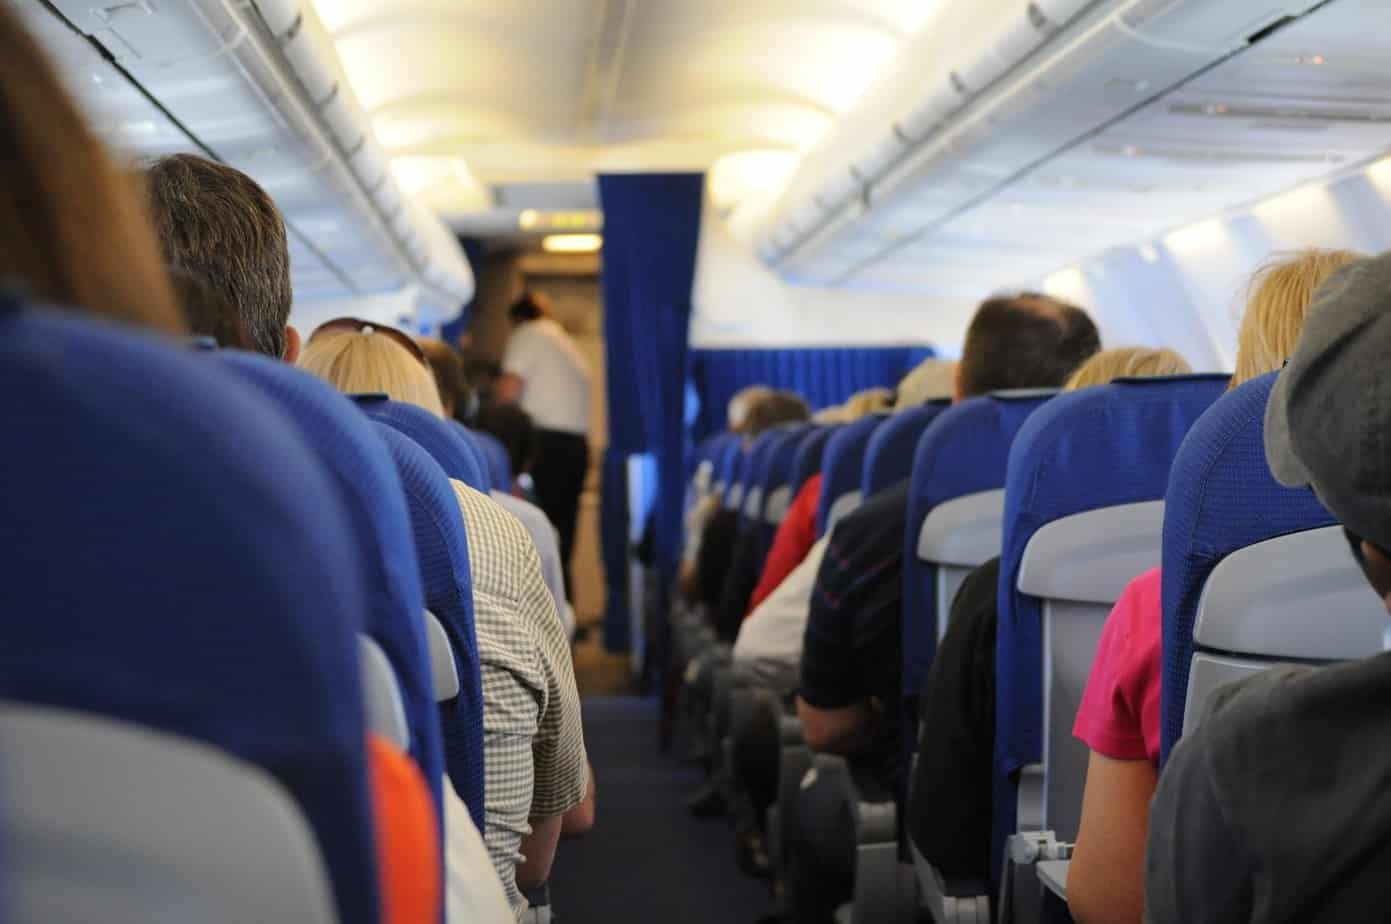 view looking down the aisle of an airplane facing the front, all wearing different clothes